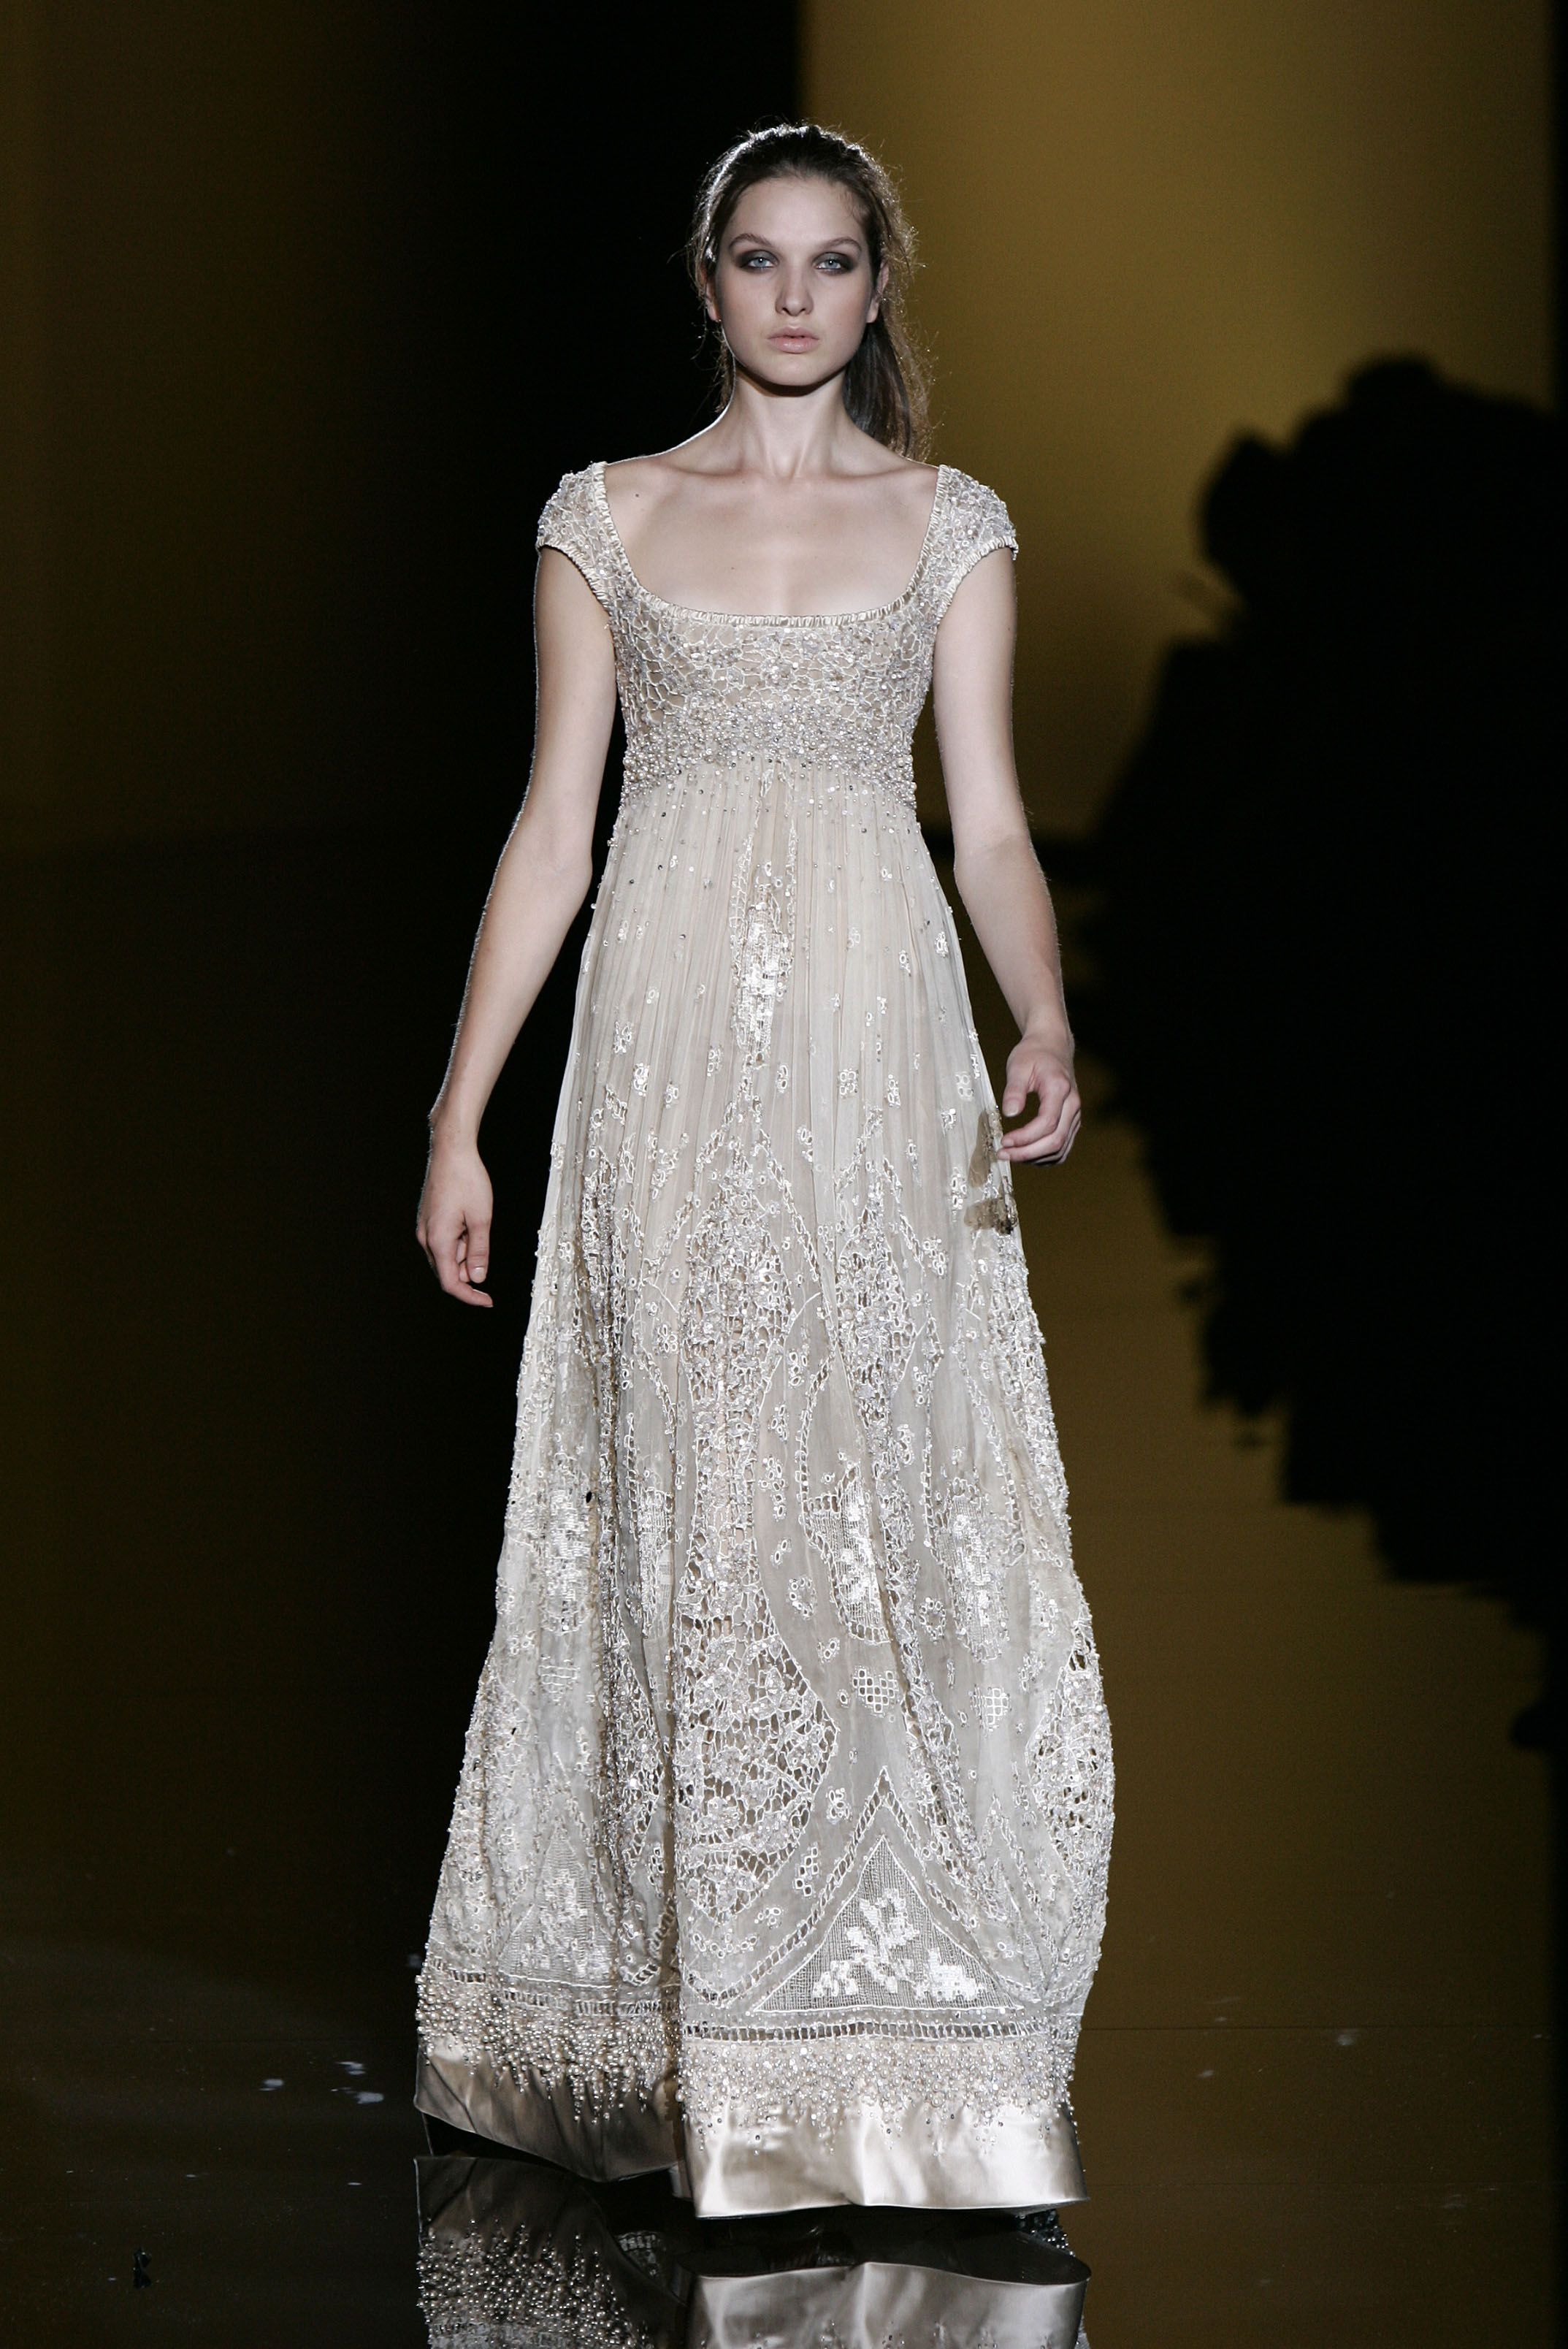 Elie Saab Haute Couture Fall Winter 2006